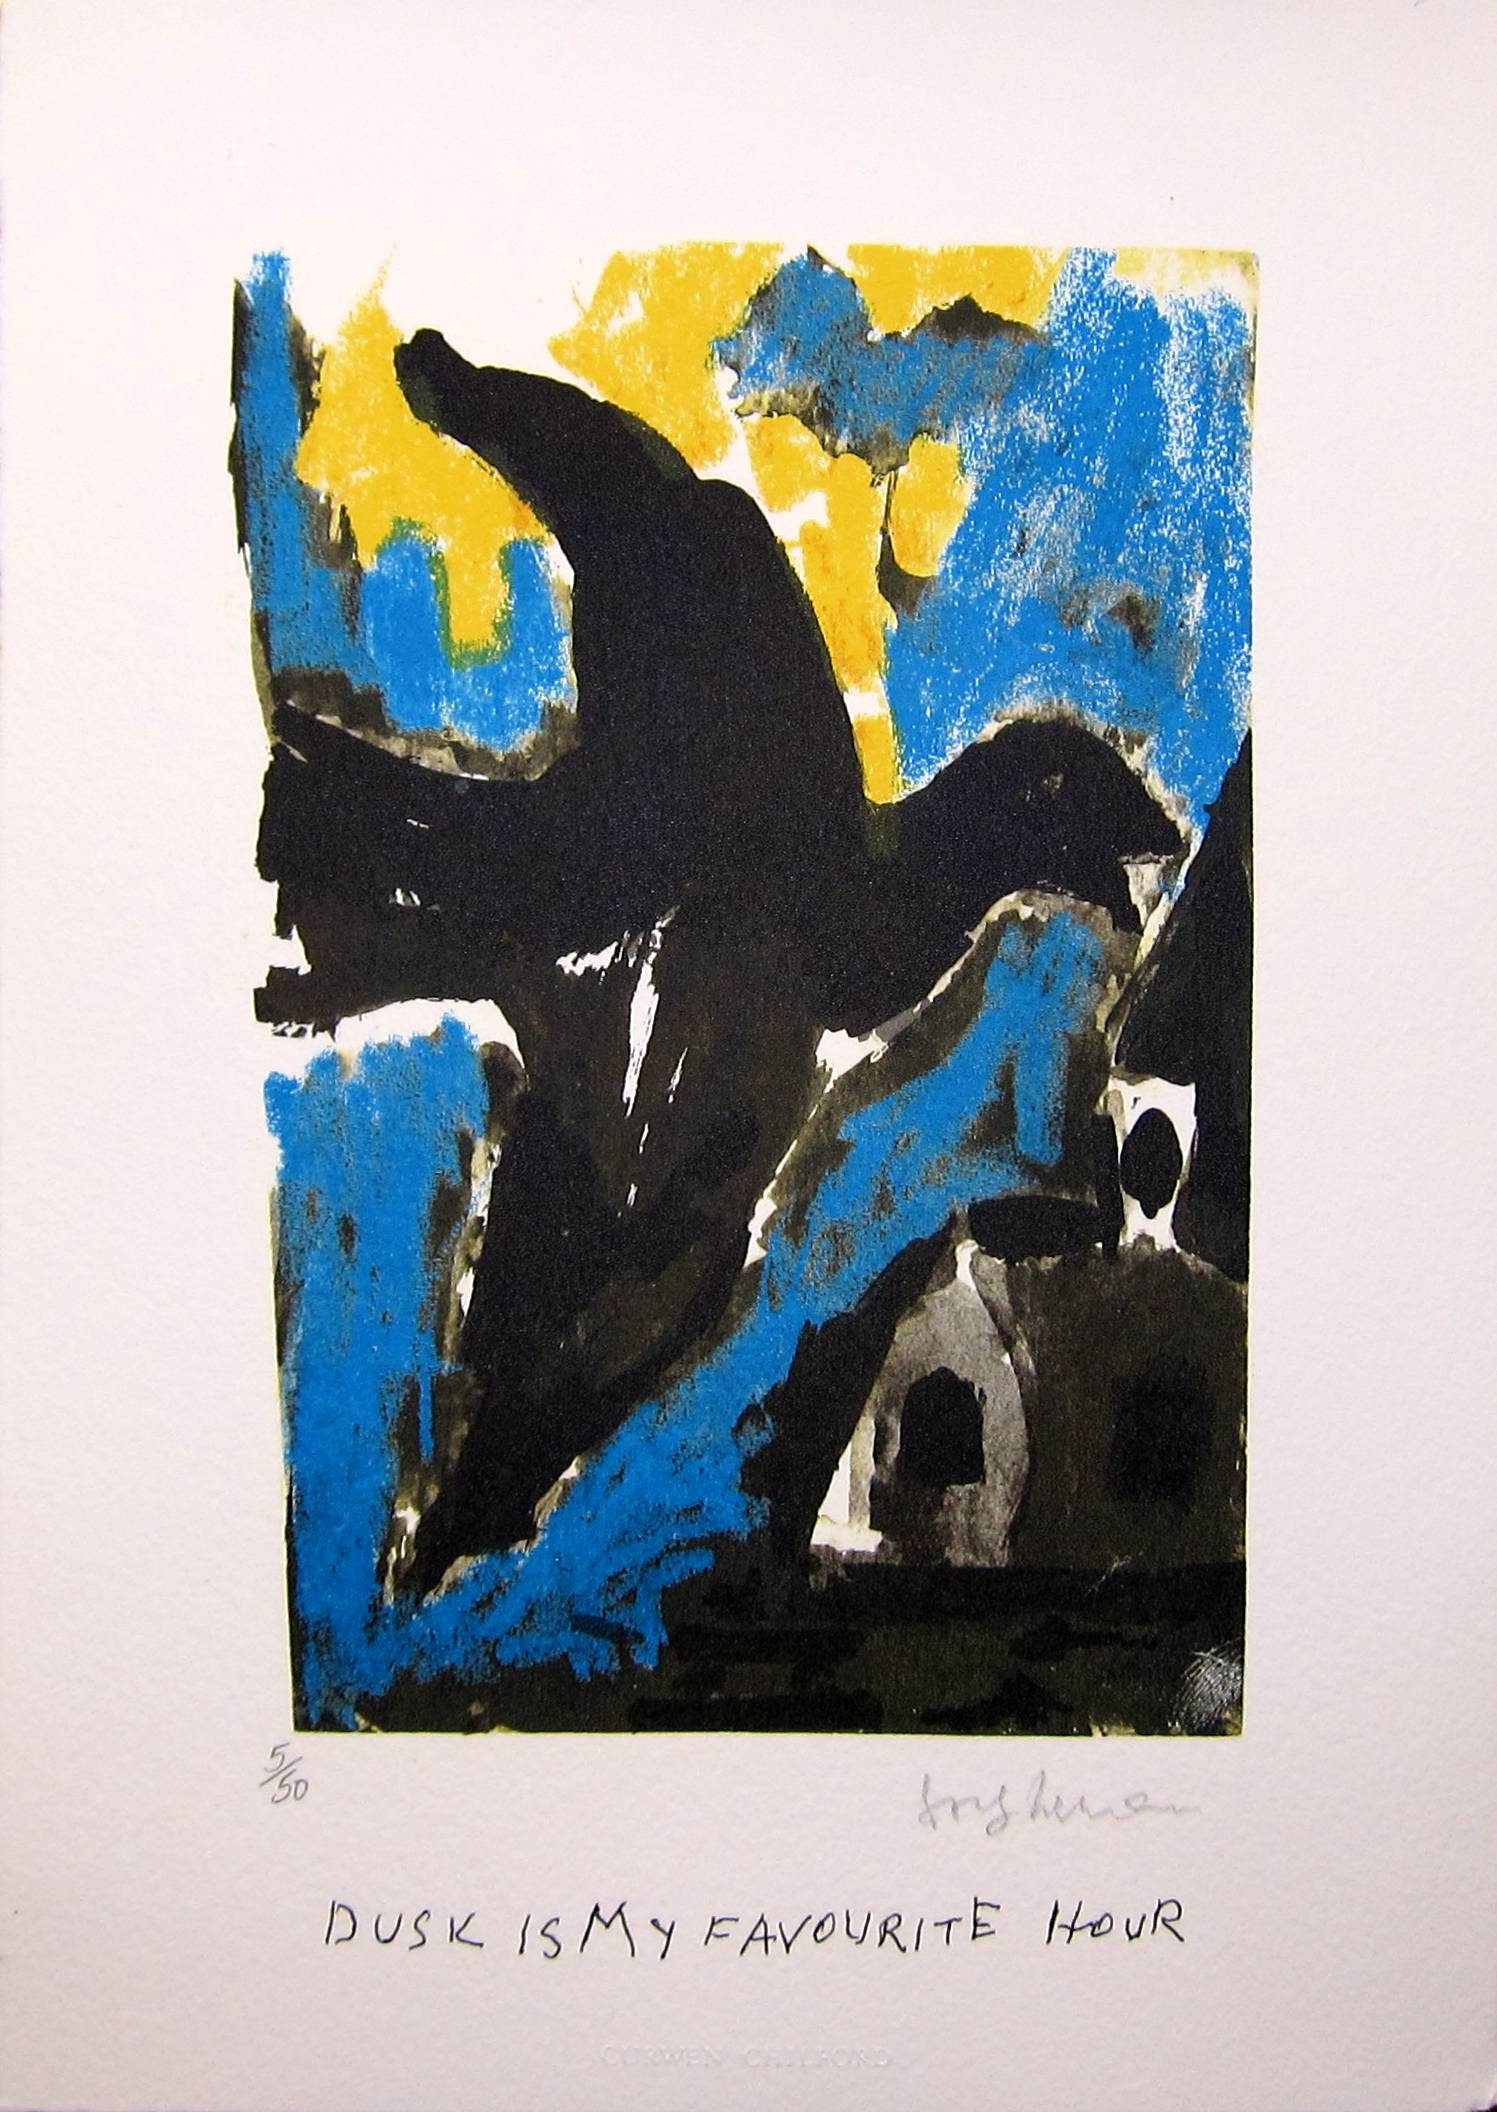 Lot 26 - JOSEF HERMAN R.A. [1911-2000]. Dusk is my favourite hour [Song of the Migrant Bird], 1999.